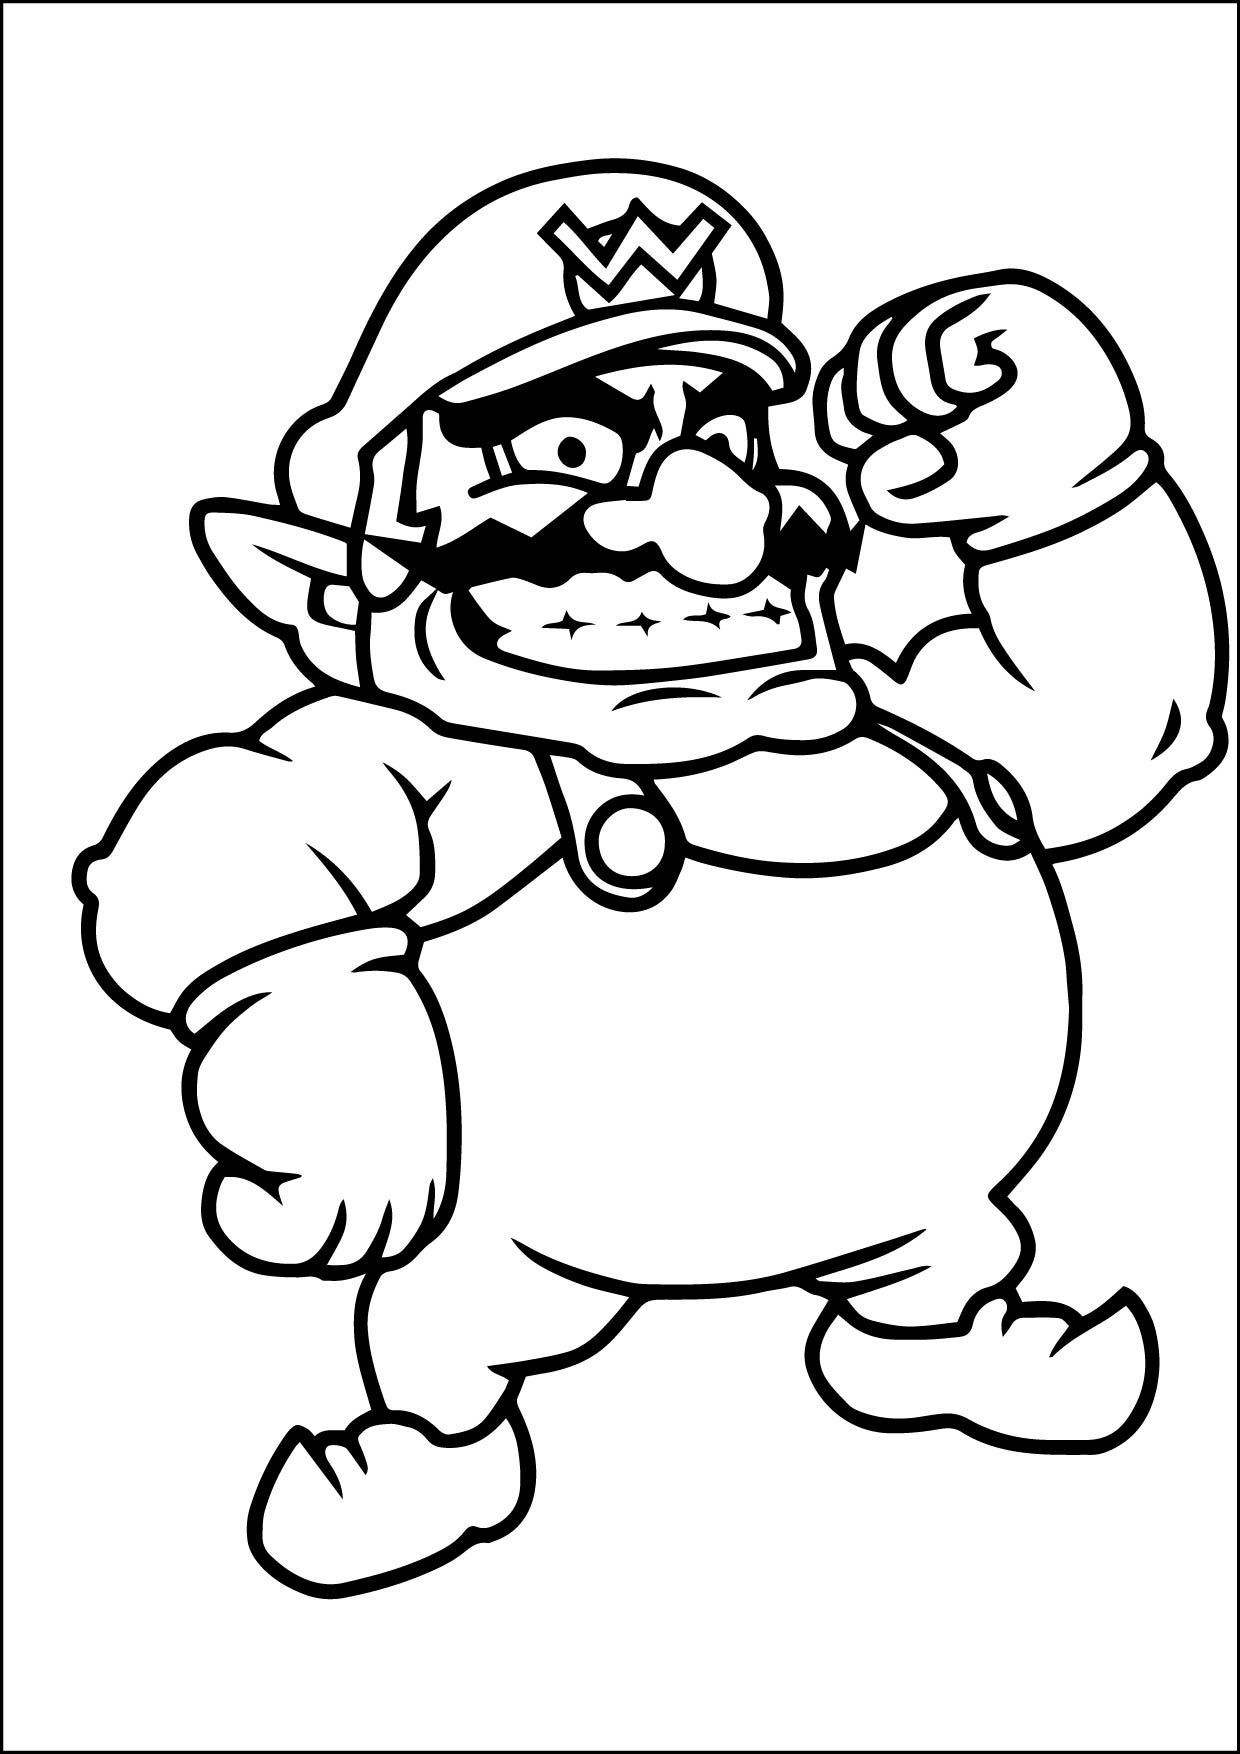 cool coloring page 11-10-2015_065539-01 Check more at http://www ...